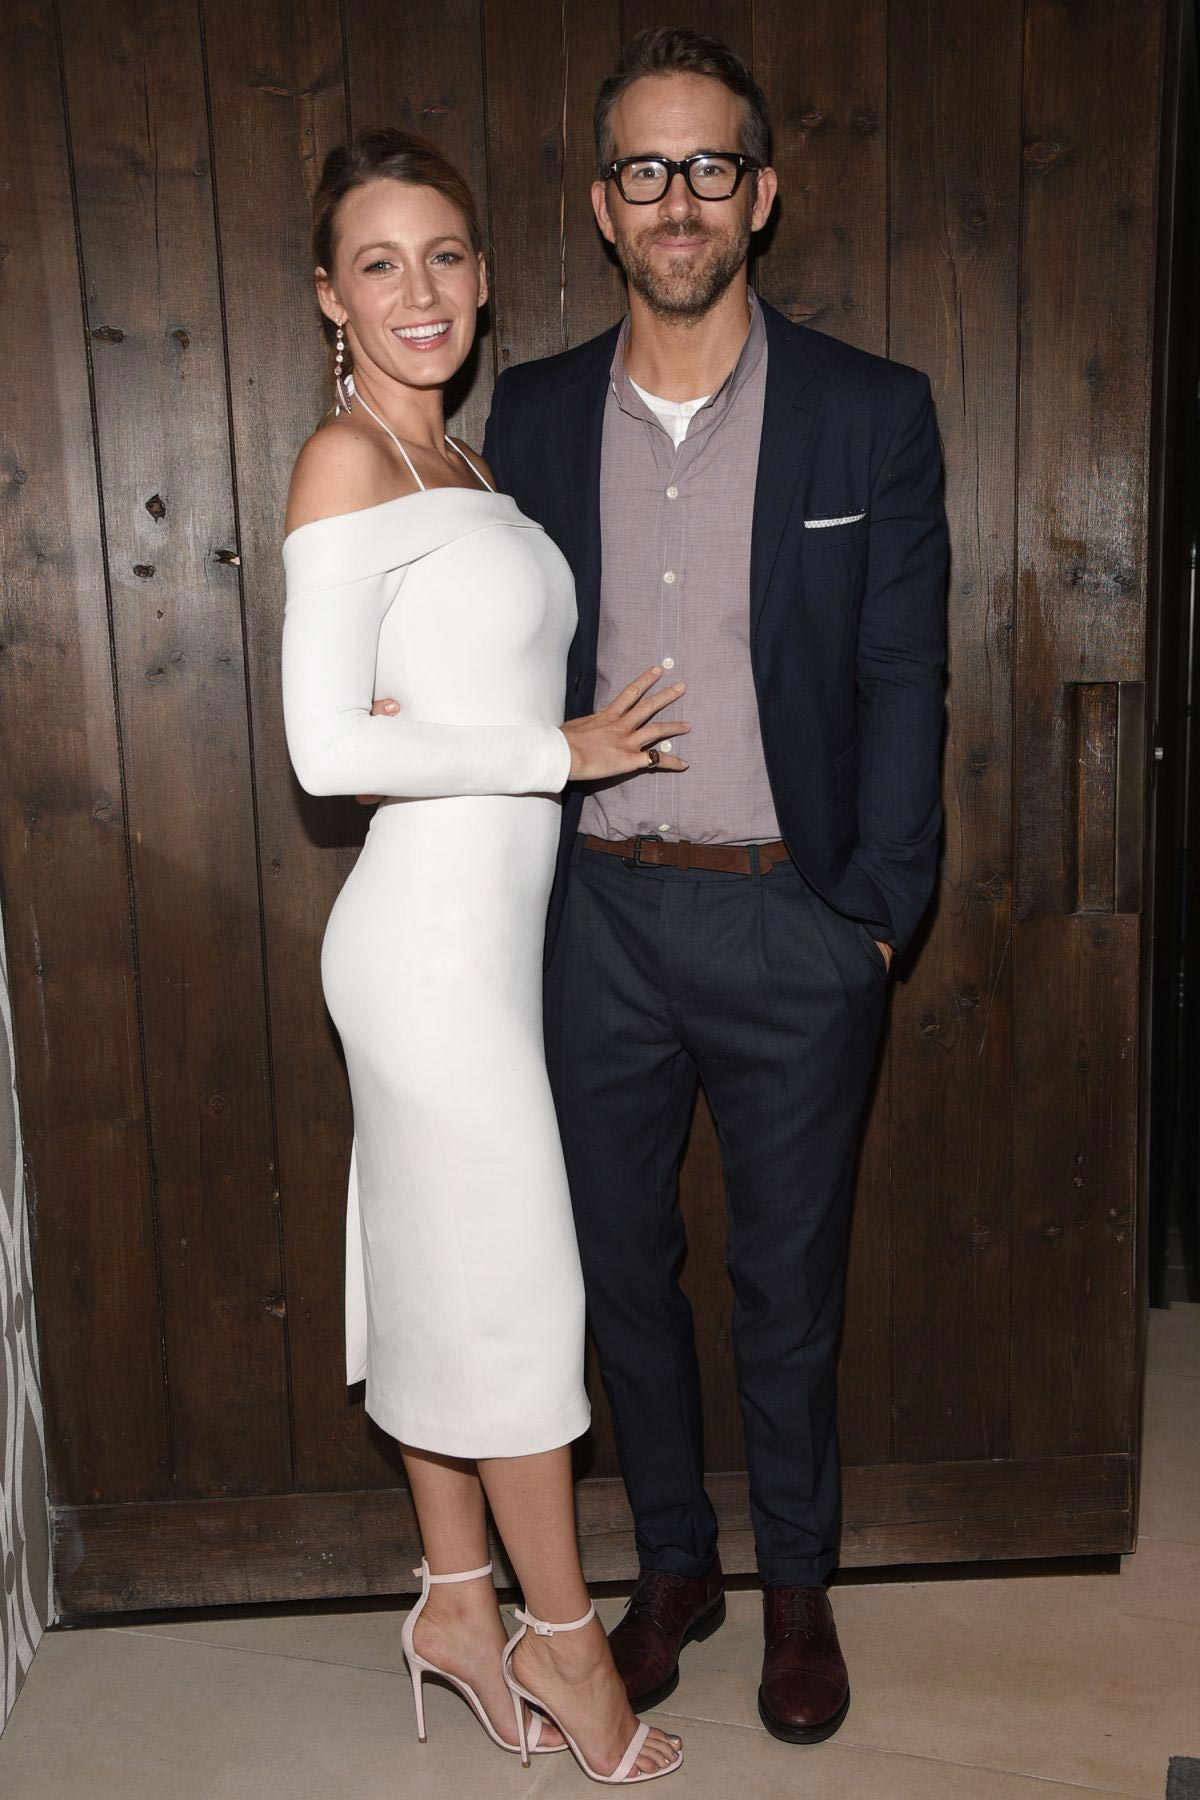 Blake Lively and Ryan Reynolds Celebrate His First Employee Orientation as Owner of Aviation Gin 2018/08/07 1